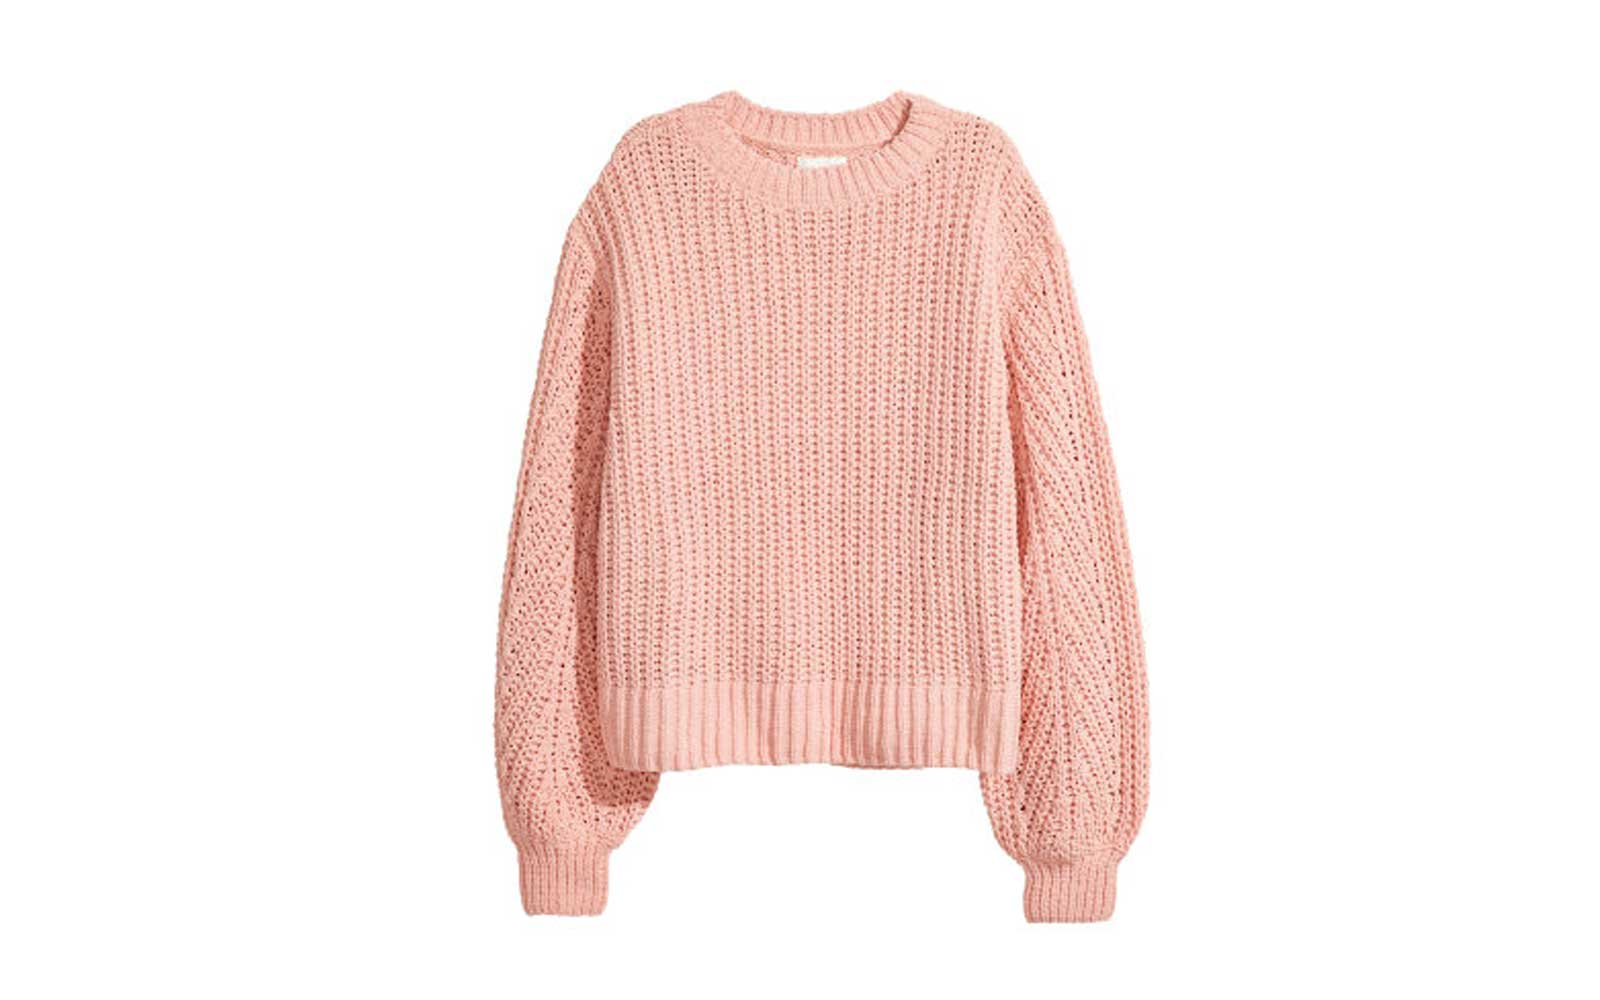 27386abfdd7124 22 Cute Oversized Sweaters for Women